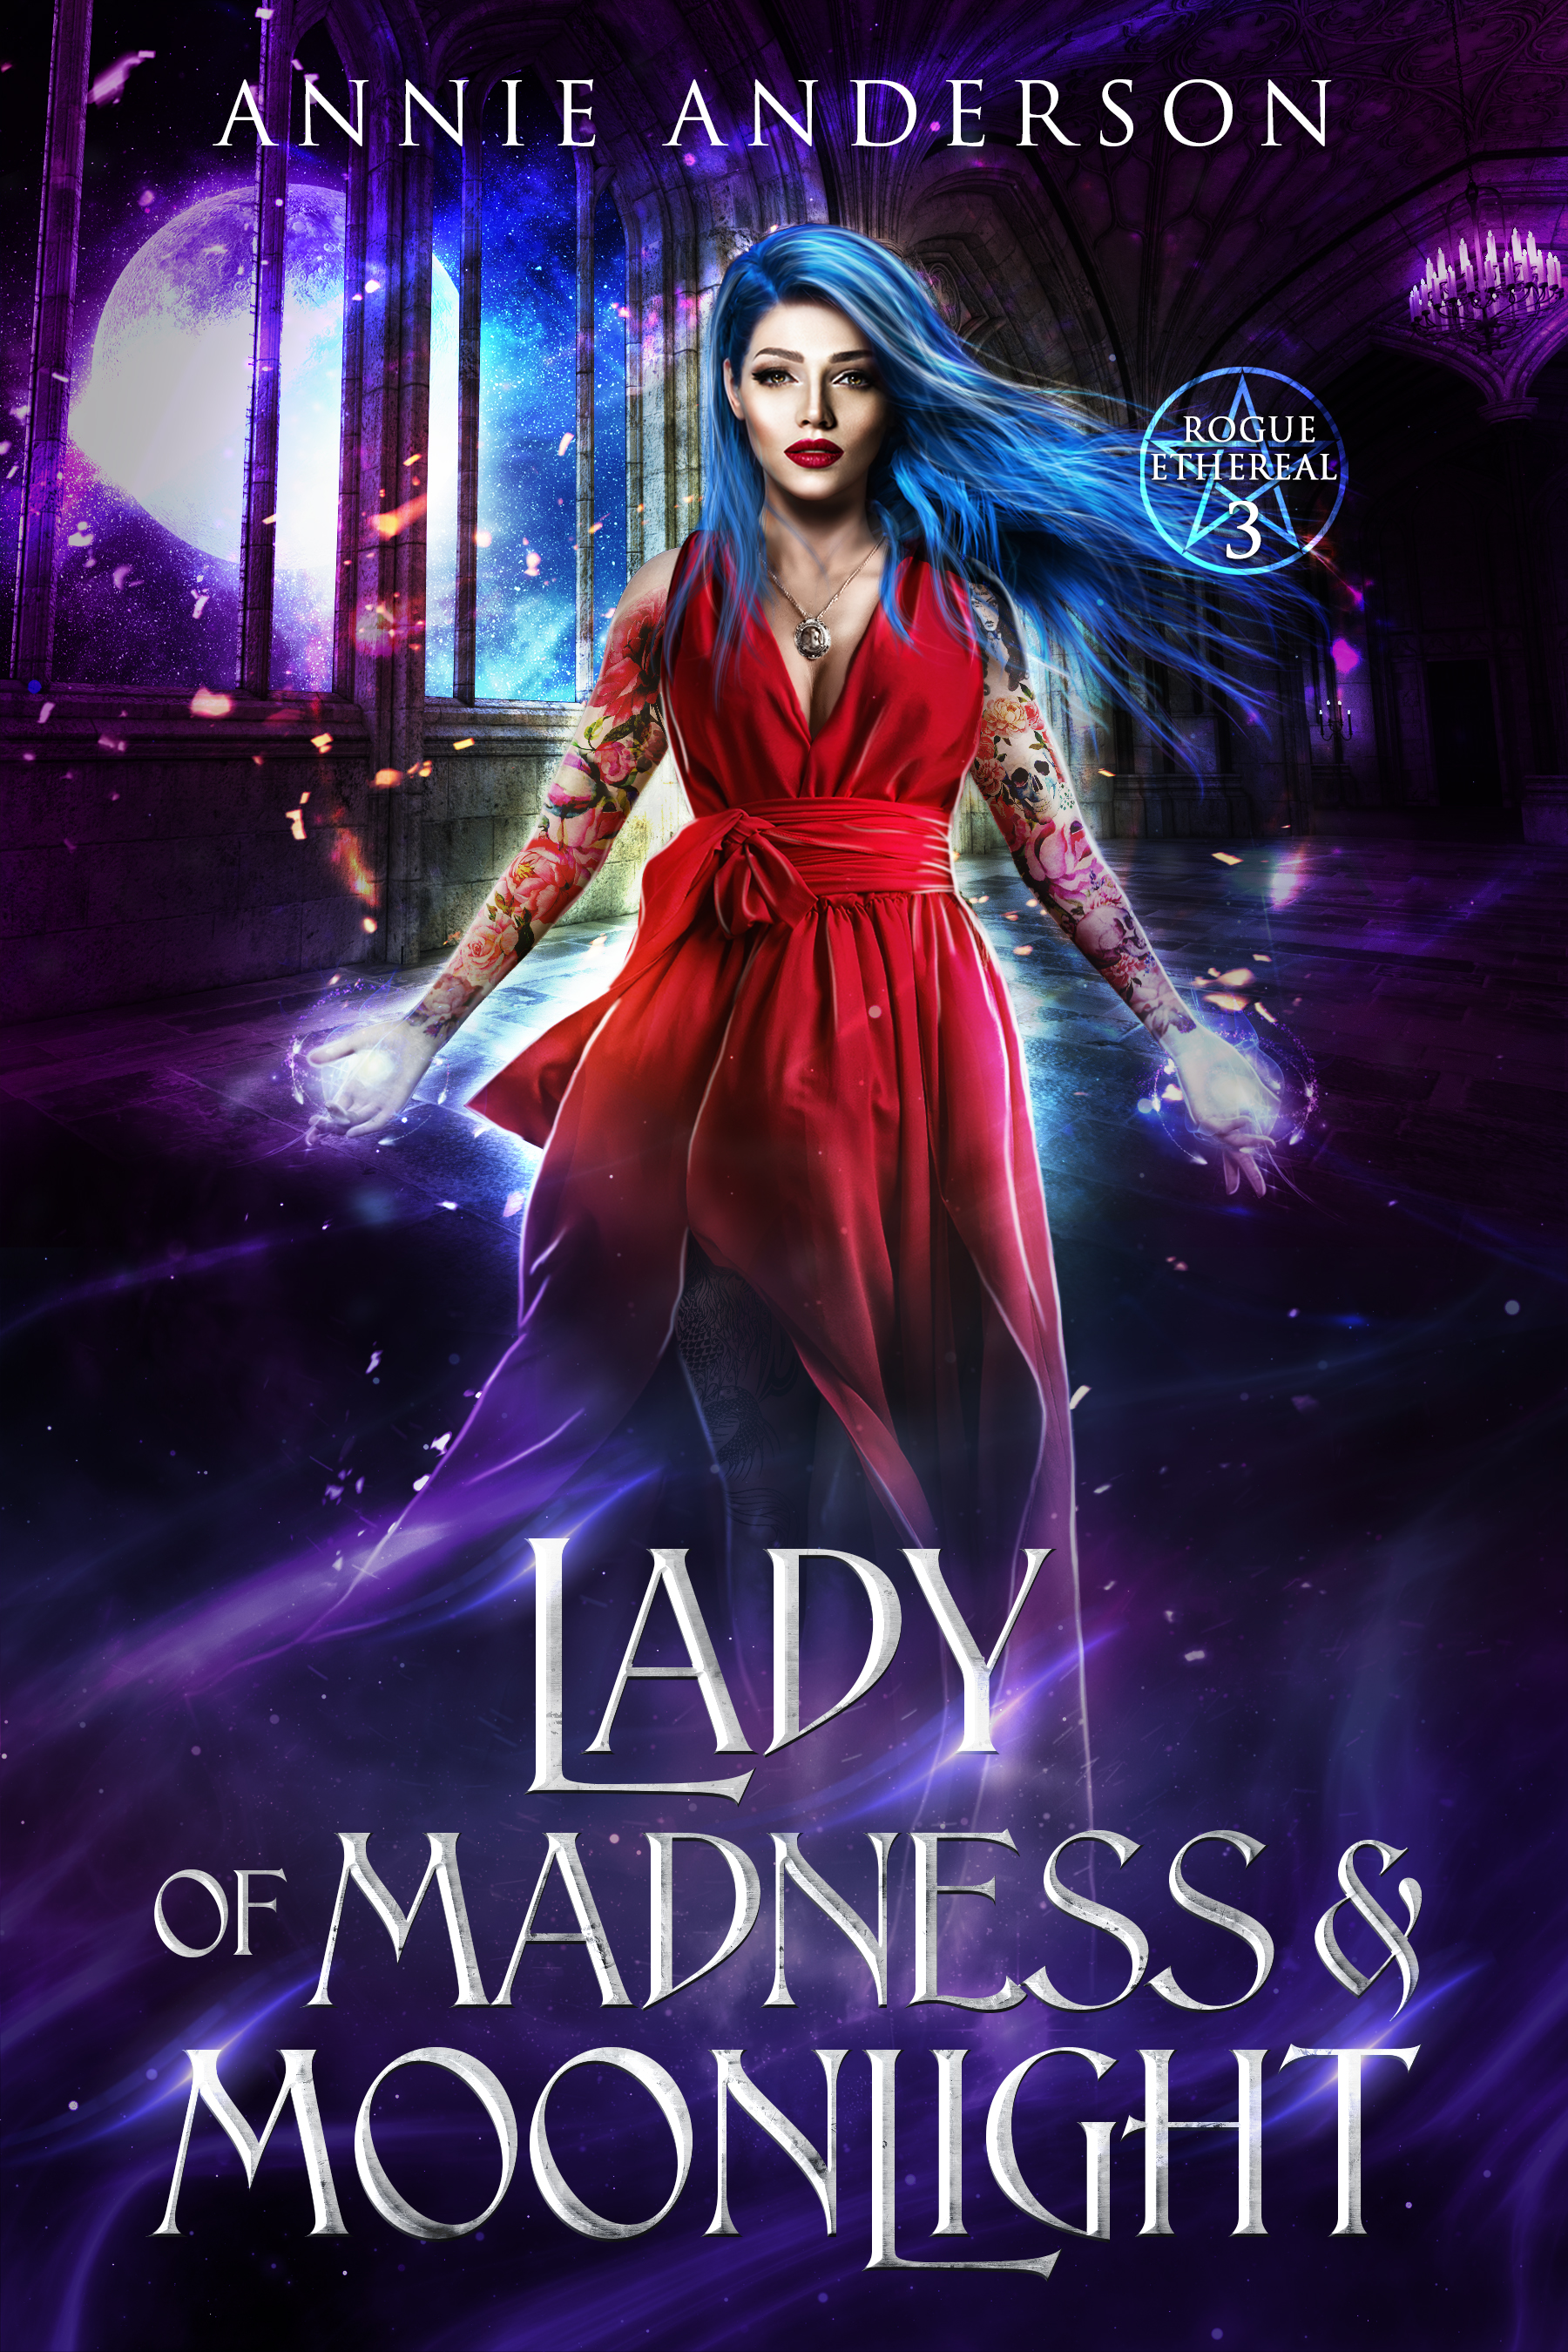 Lady of Madness & Moonlight (Rogue Ethereal #3)